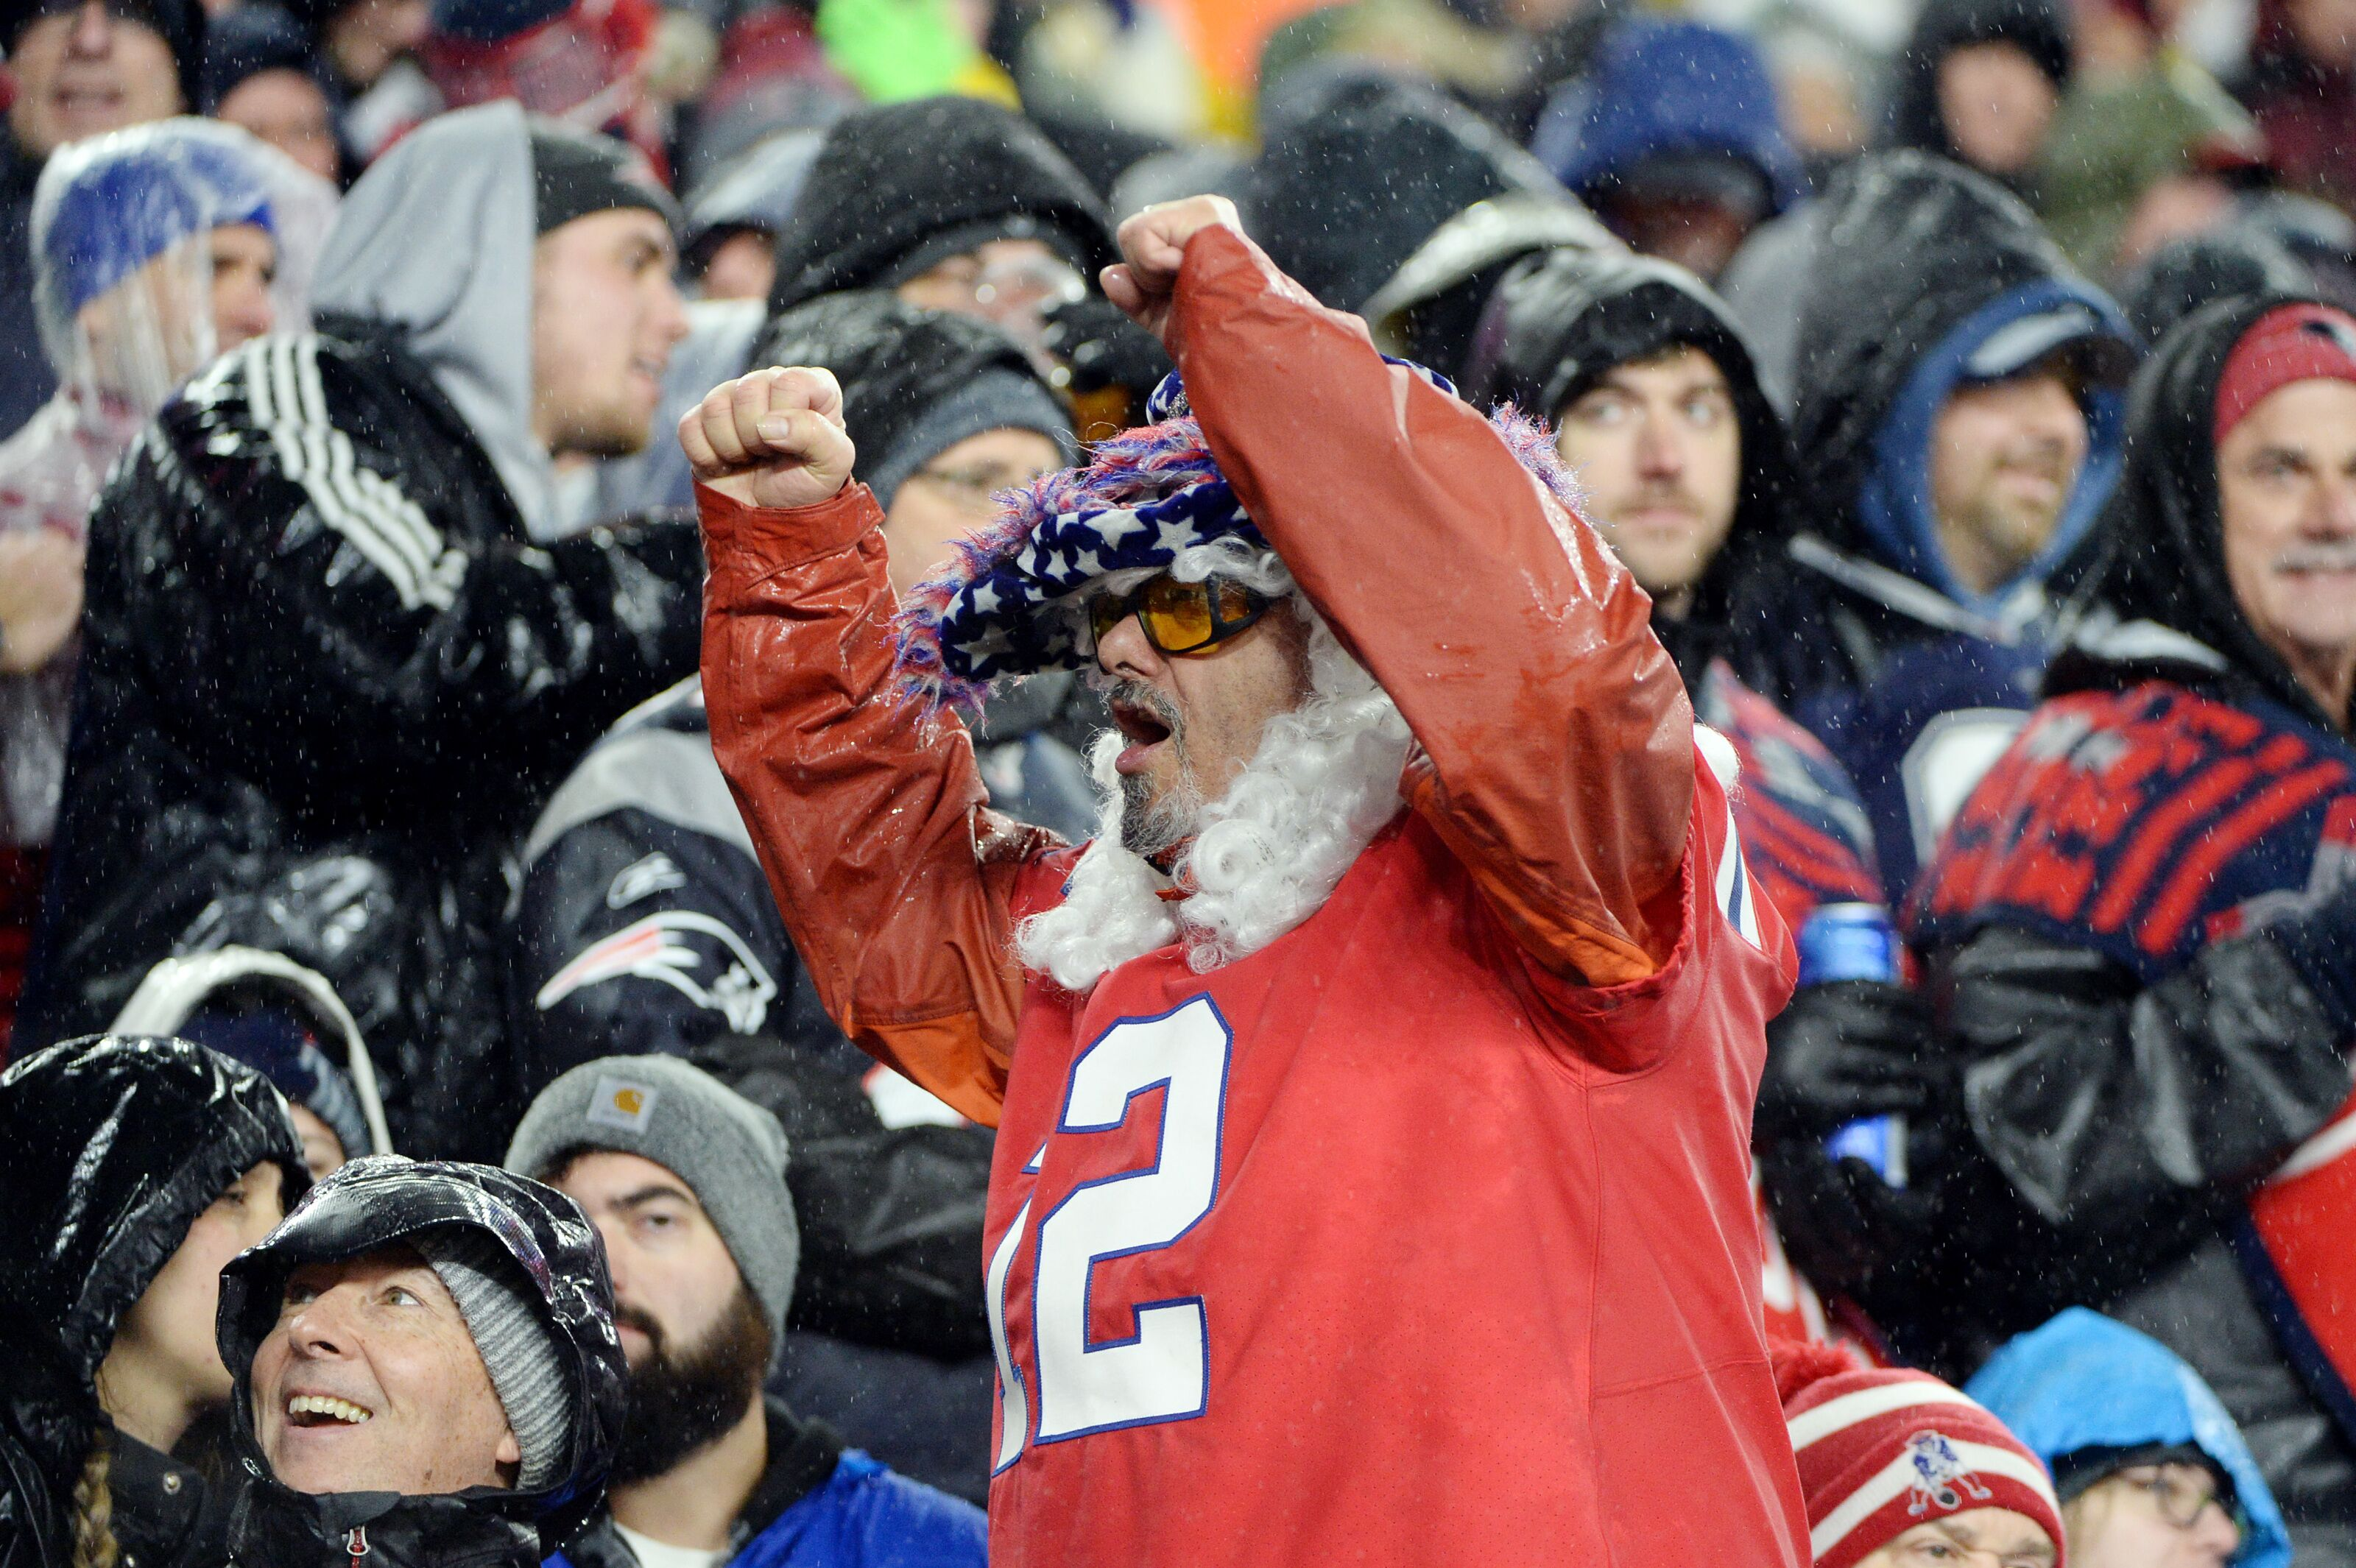 Patriots fans were wrong to boo their team at halftime on Sunday